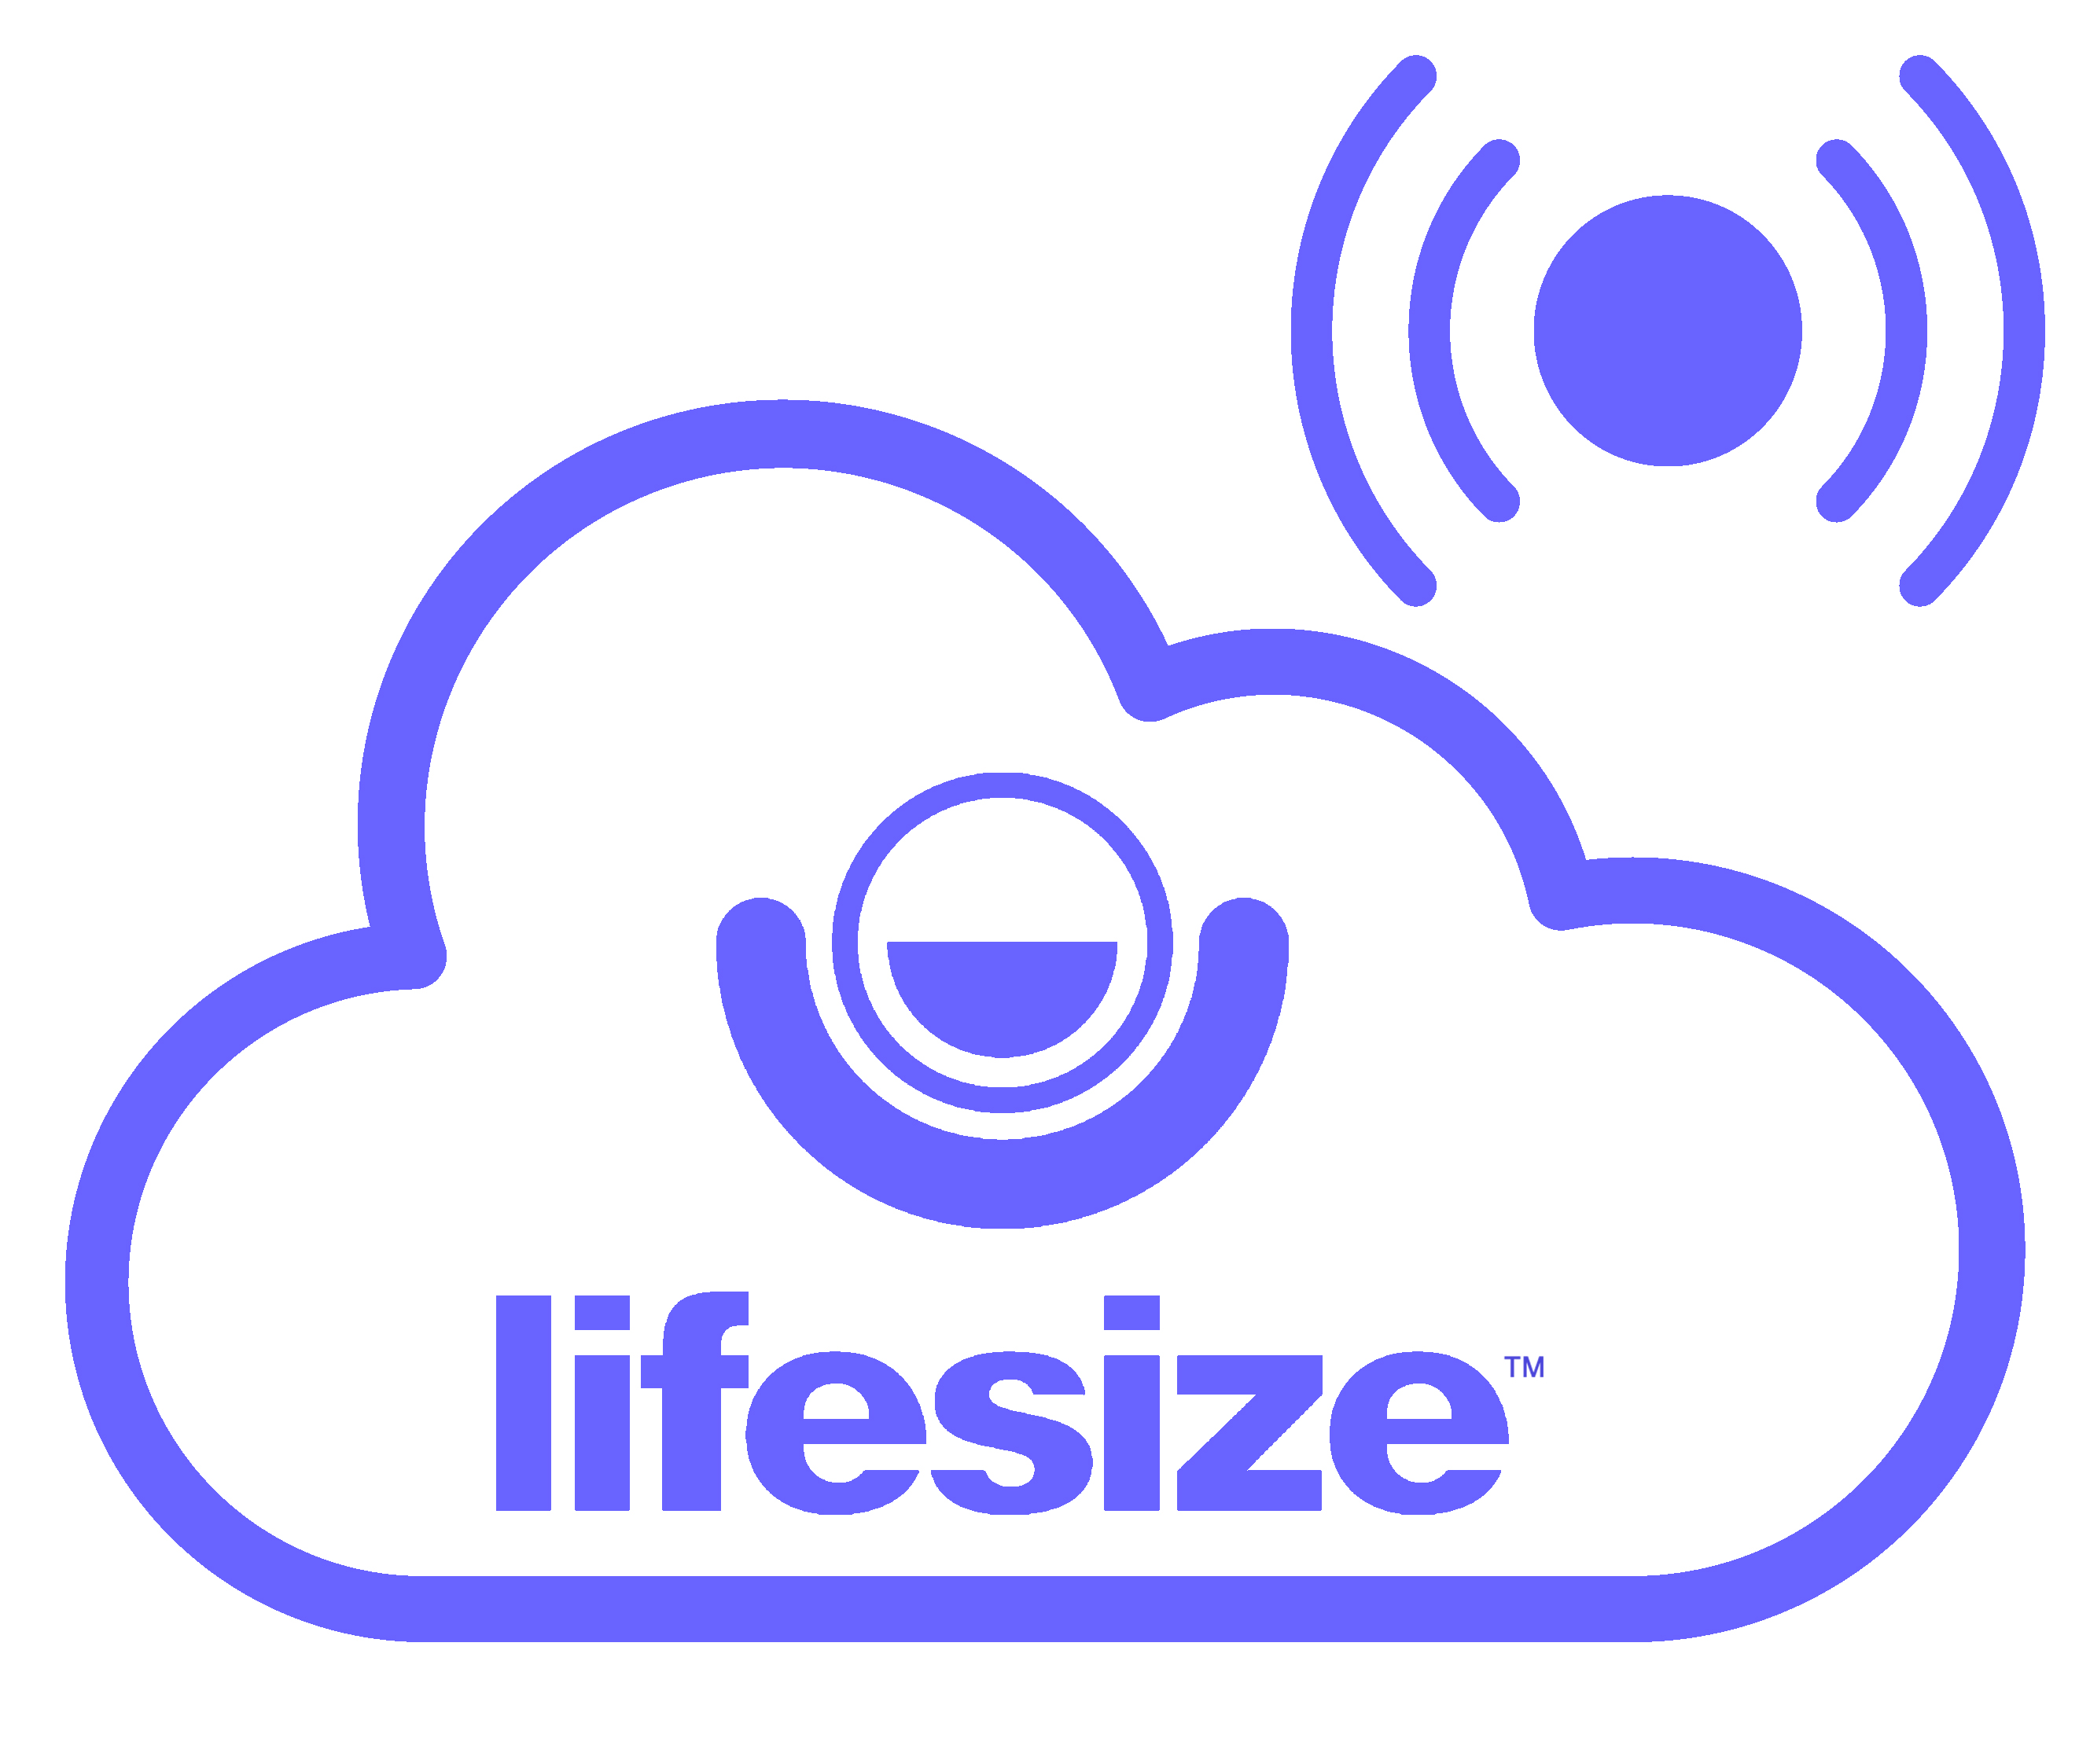 LIFESIZE Lifesize Live Stream - 500 Viewers - Option de visioconférence Cloud